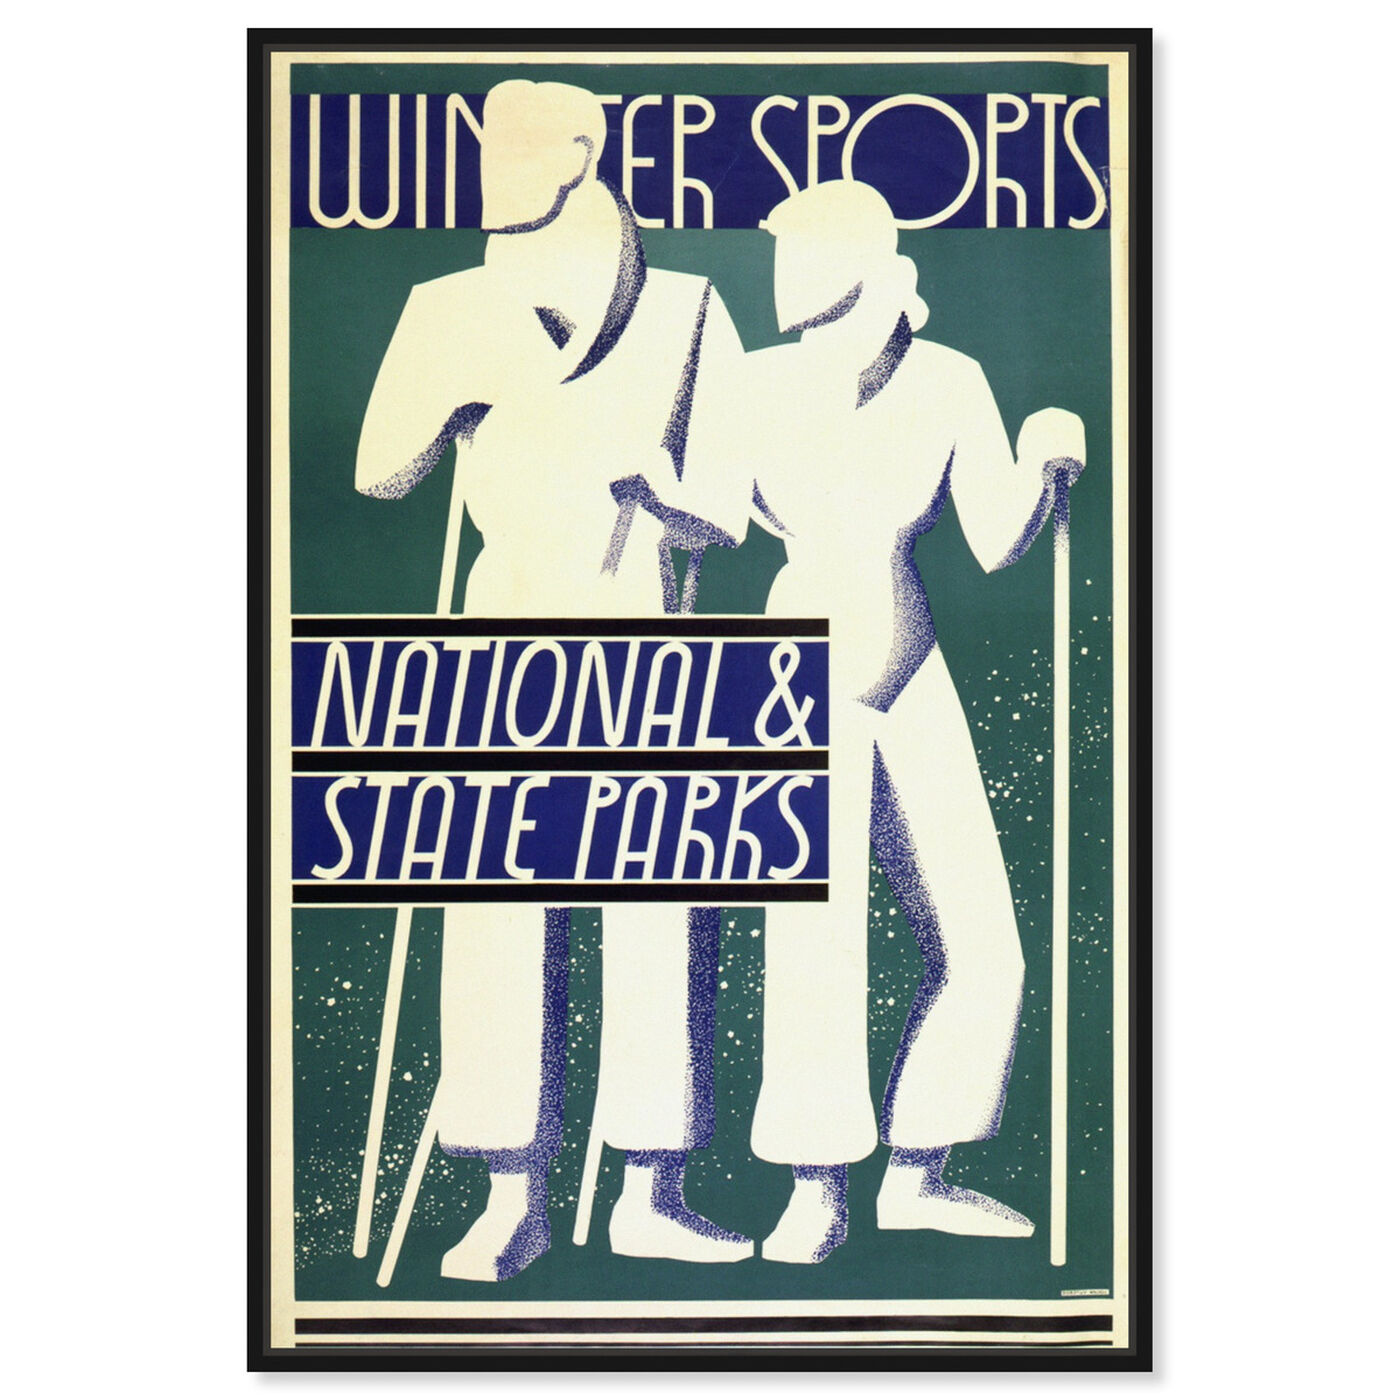 Front view of National and State Parks featuring advertising and posters art.